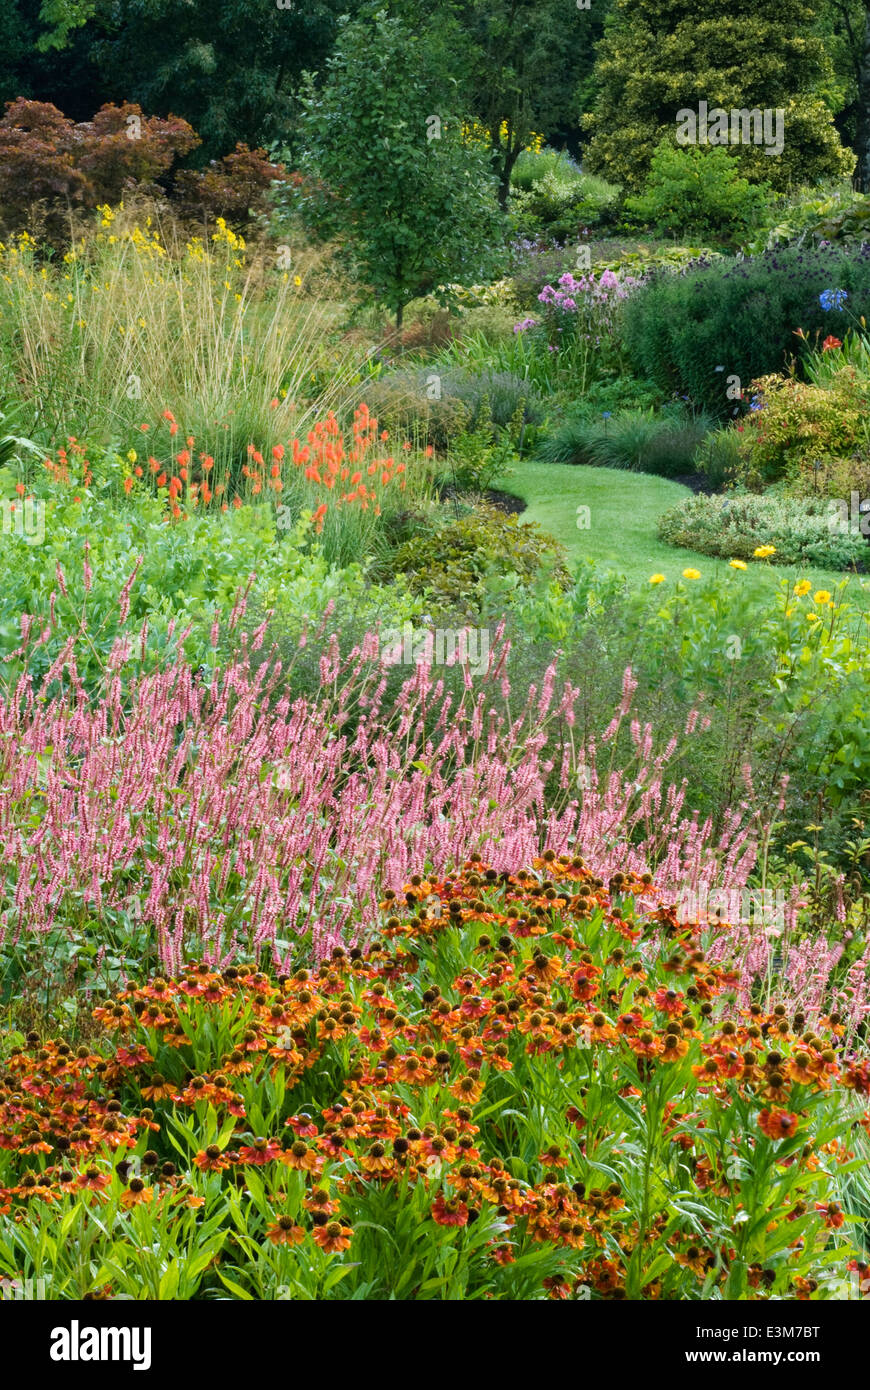 Perennials and Grass, August. Portrait of summer borders and pathway. - Stock Image